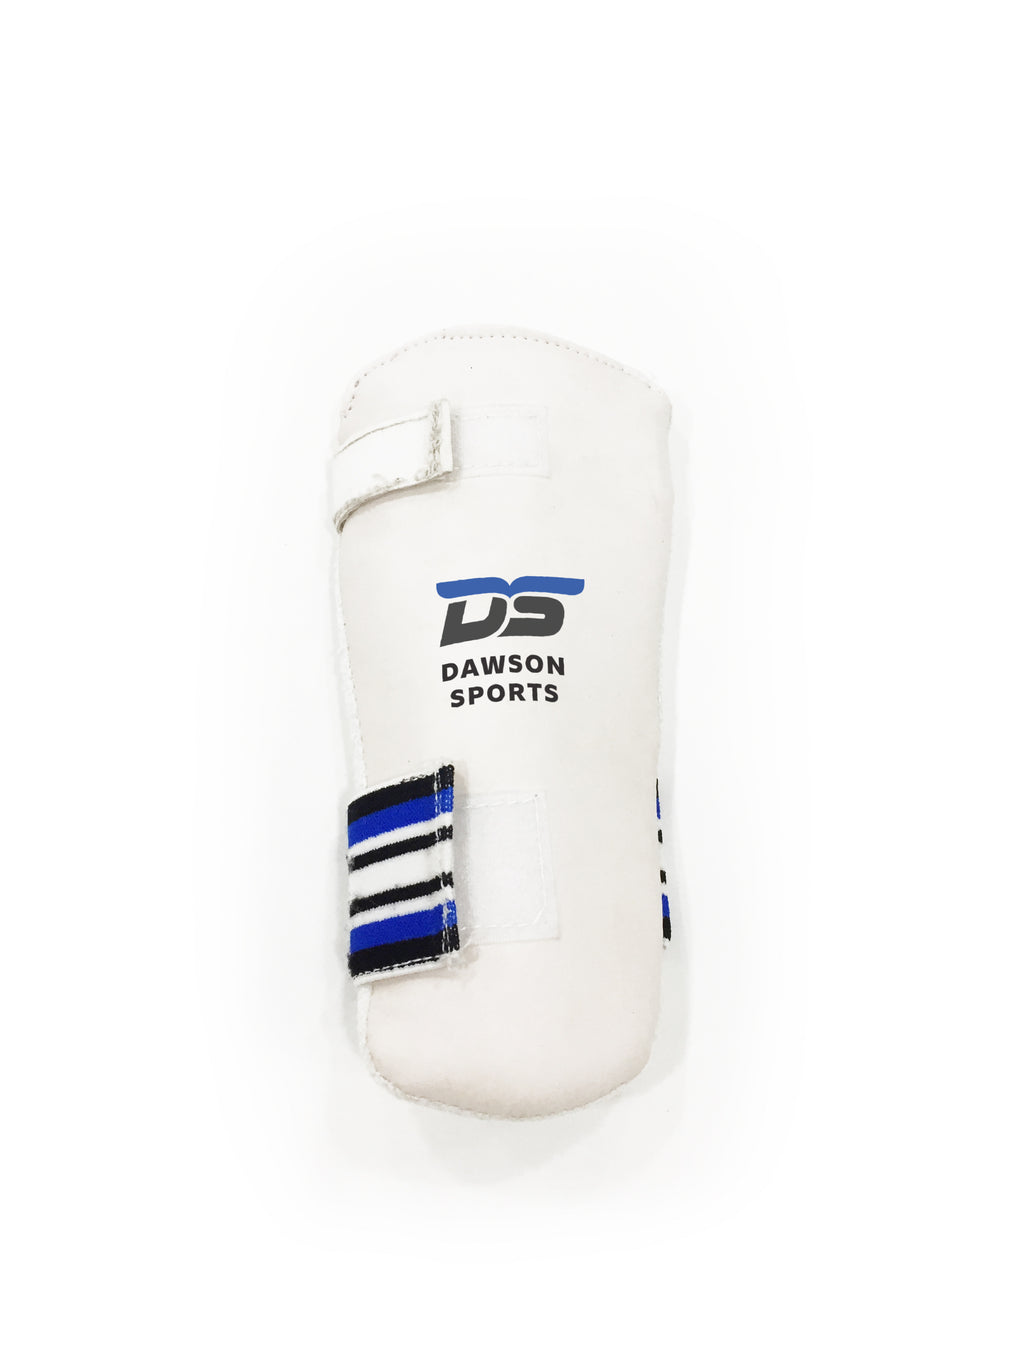 Cricket Arm Guard - Dawson Sports